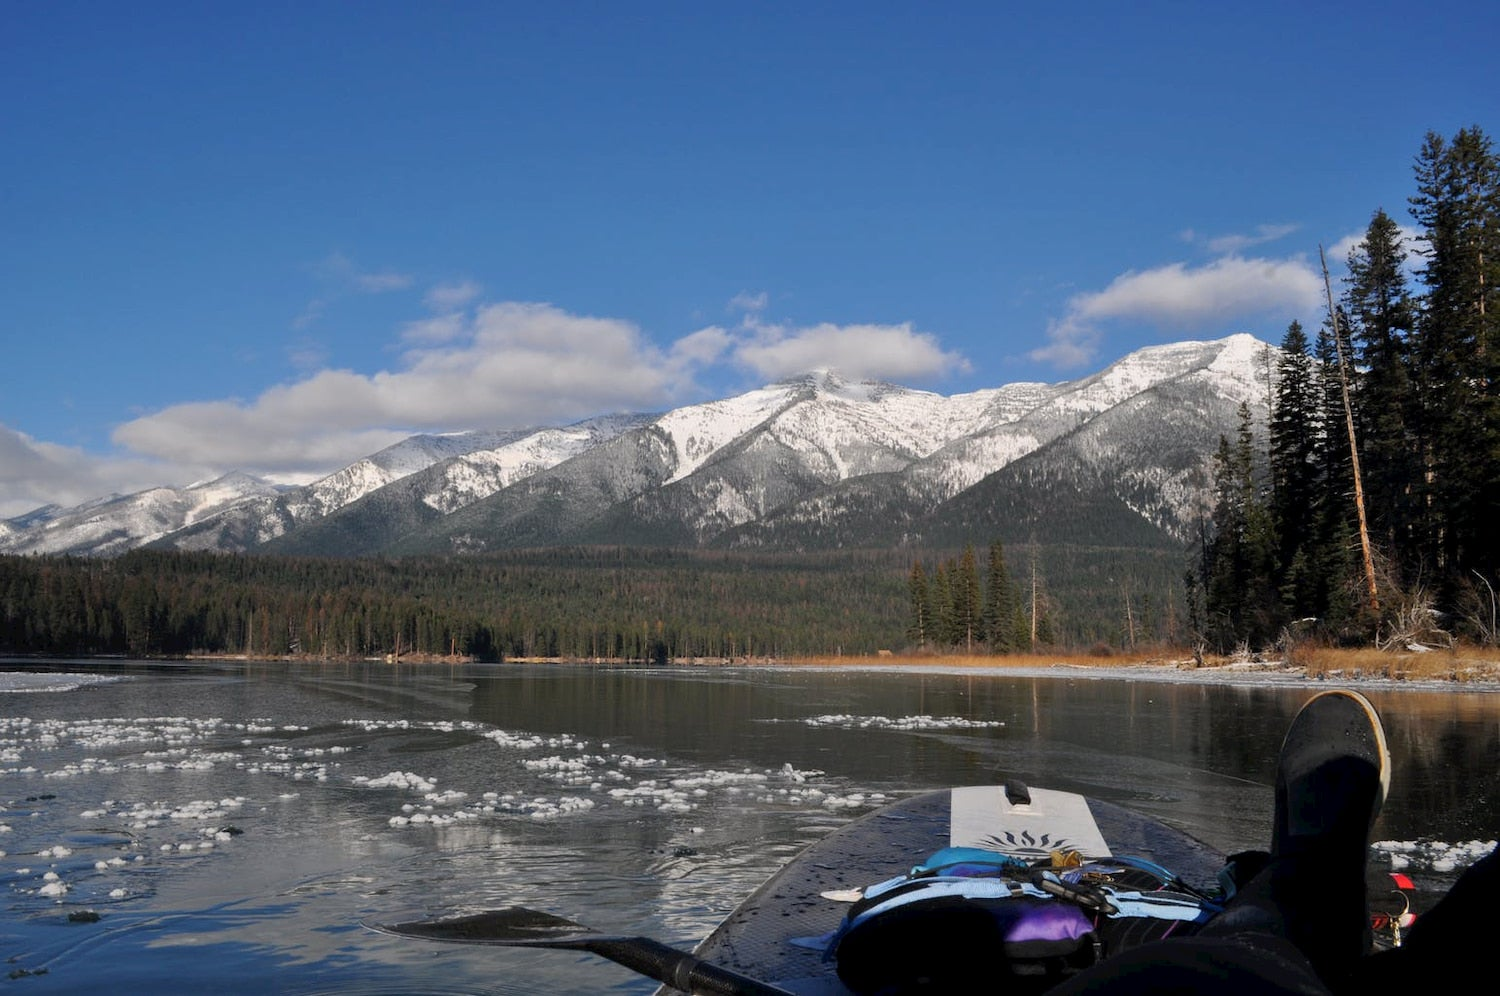 boat on lake looking at snowy mountains